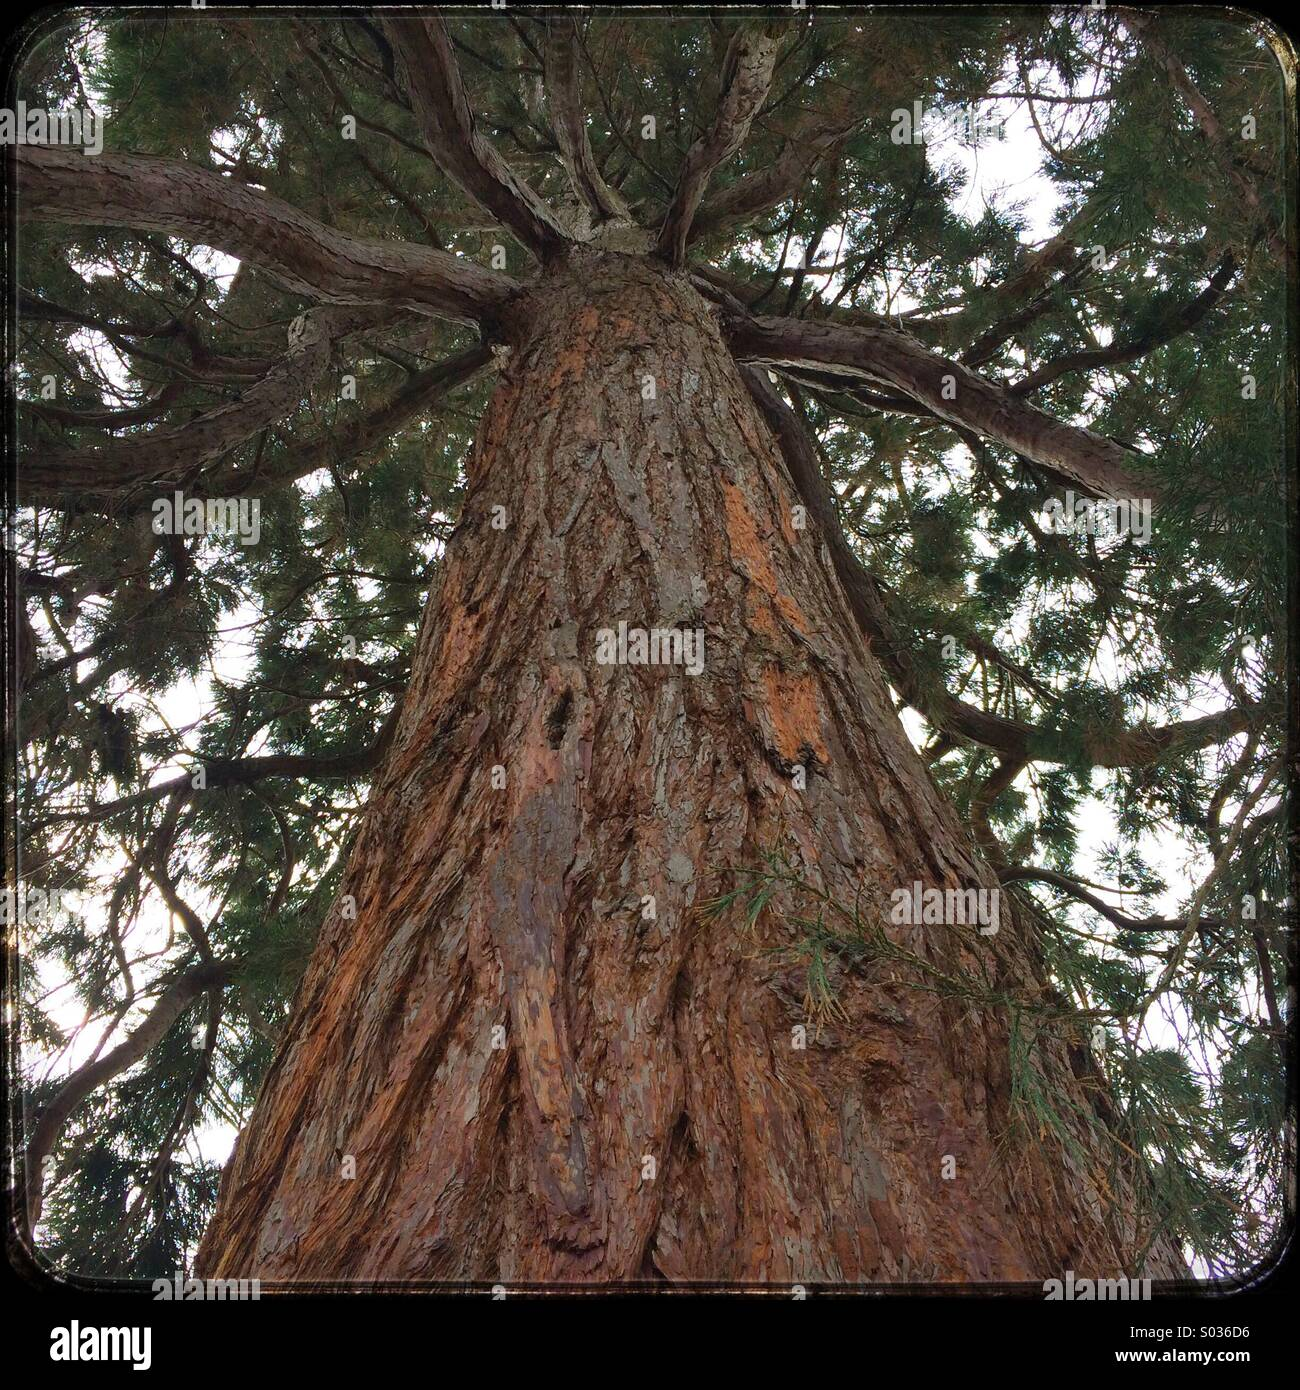 Fir tree growing tall giving the appearance that is is reaching up to the sky. - Stock Image